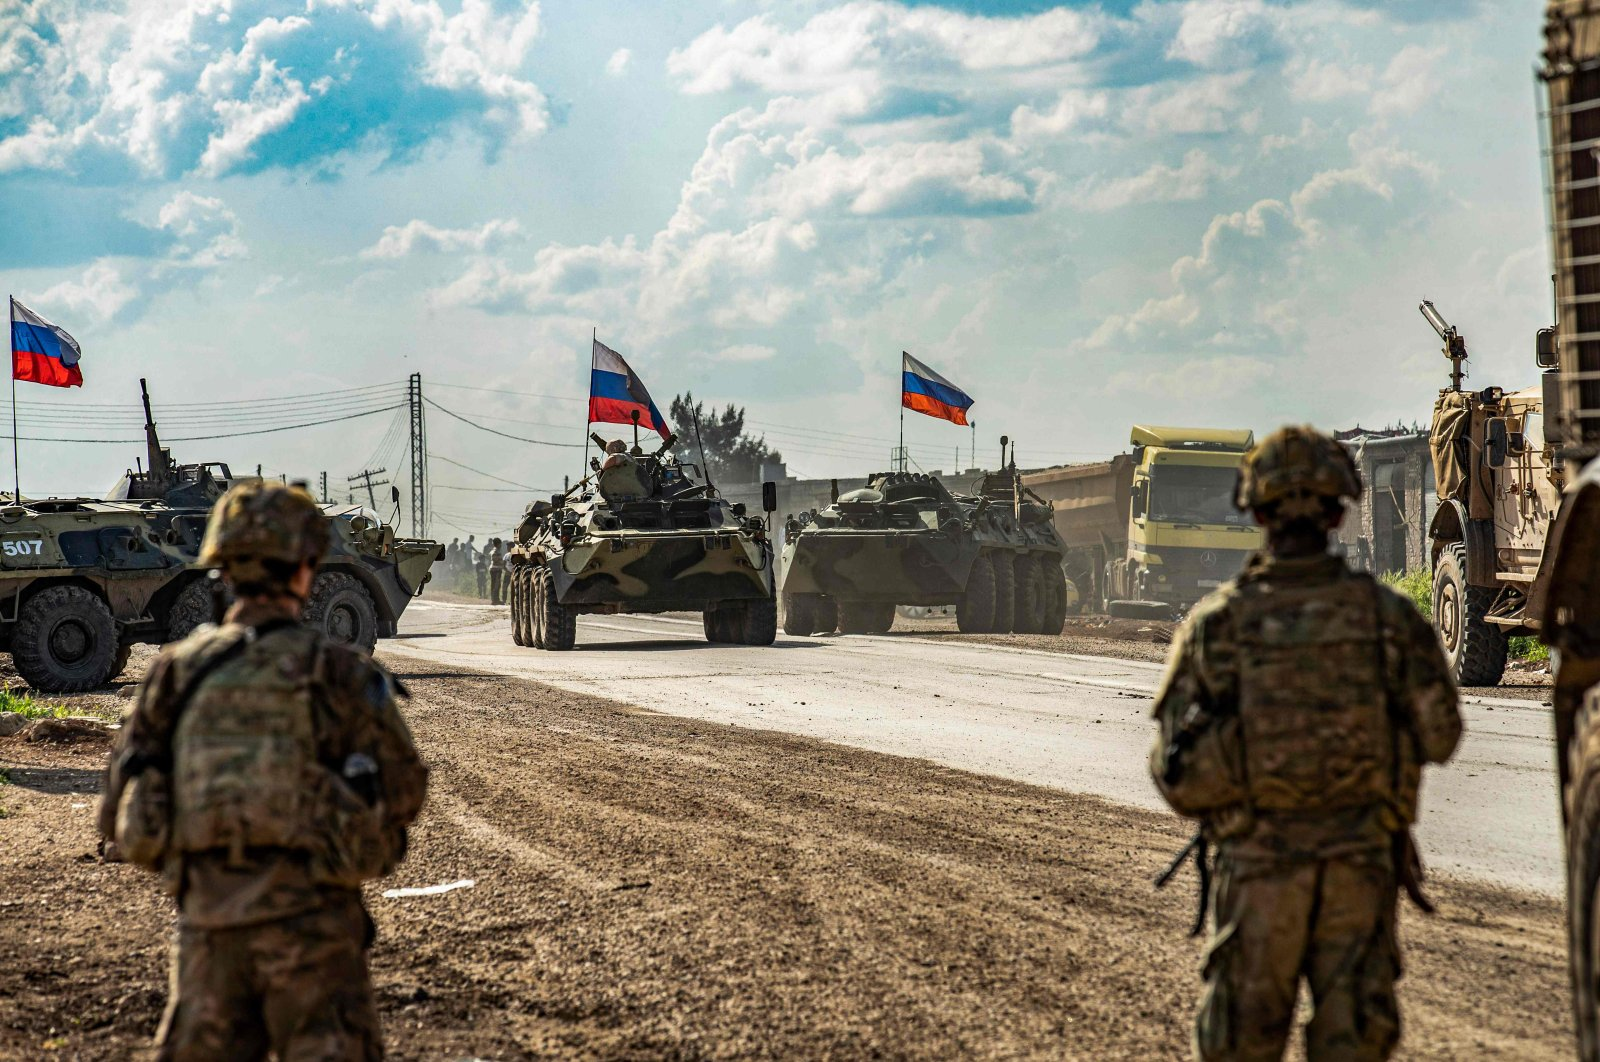 U.S. soldiers stand along a road across from Russian military armored personnel carriers (APCs), near the village of Tannuriyah, east of Qamishli, Syria, May 2, 2020. (AFP Photo)